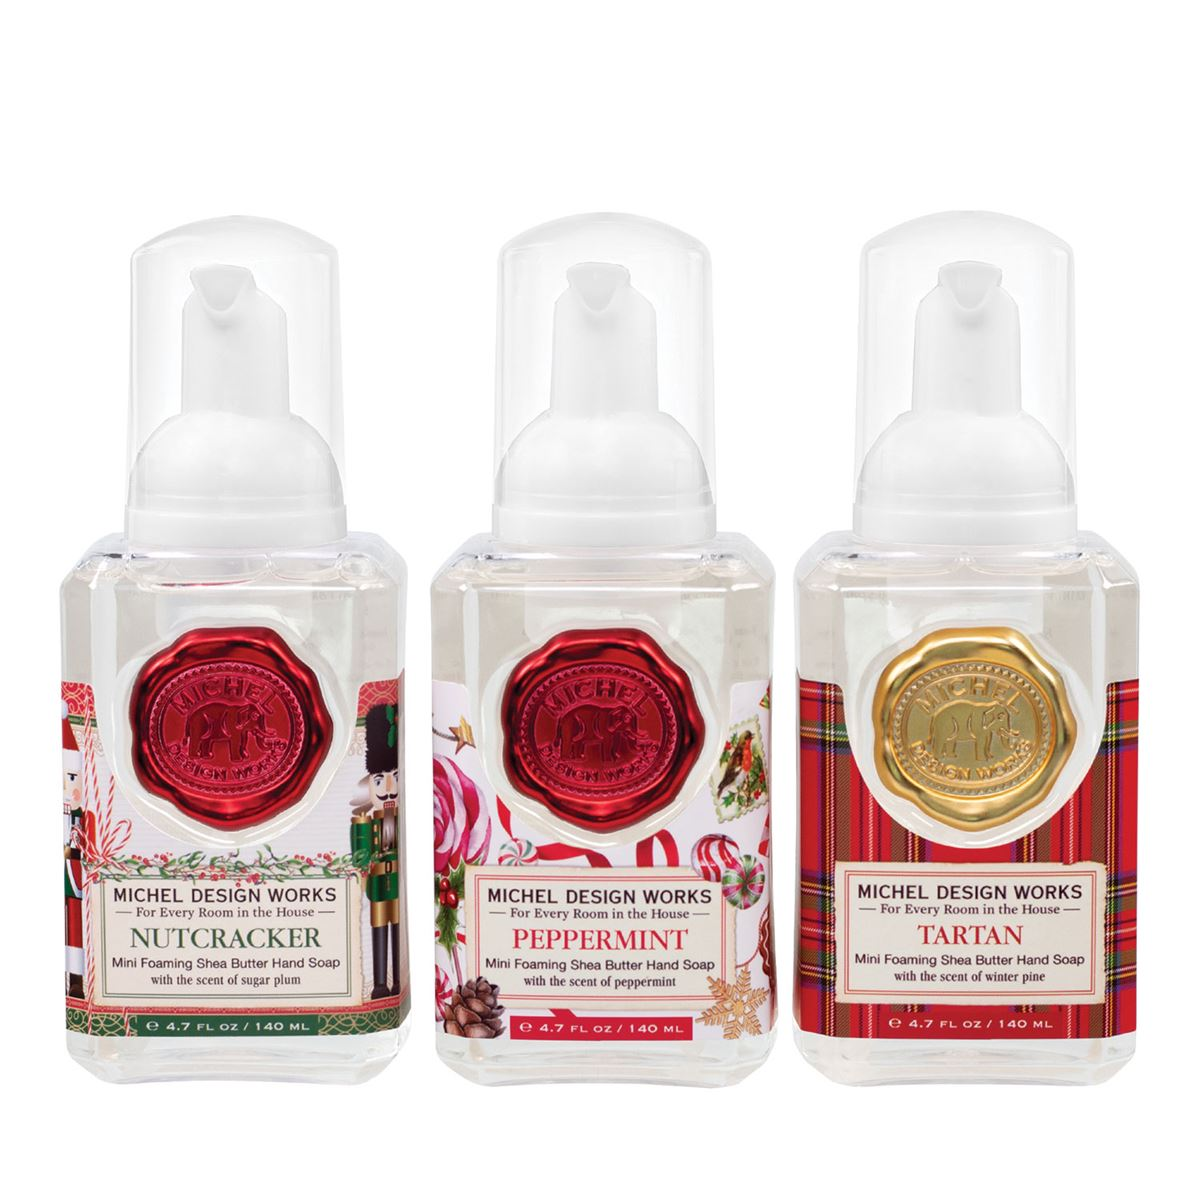 This mini foaming hand soap set is the perfect way to try several of Michel Design Works holiday fragrances! The set features the popular sugarplum-scented Nutcracker, Peppermint, and a winter-pine fragranced Tartan. All have their signature blend of shea butter and aloe vera for gentle cleansing and moisturizing.